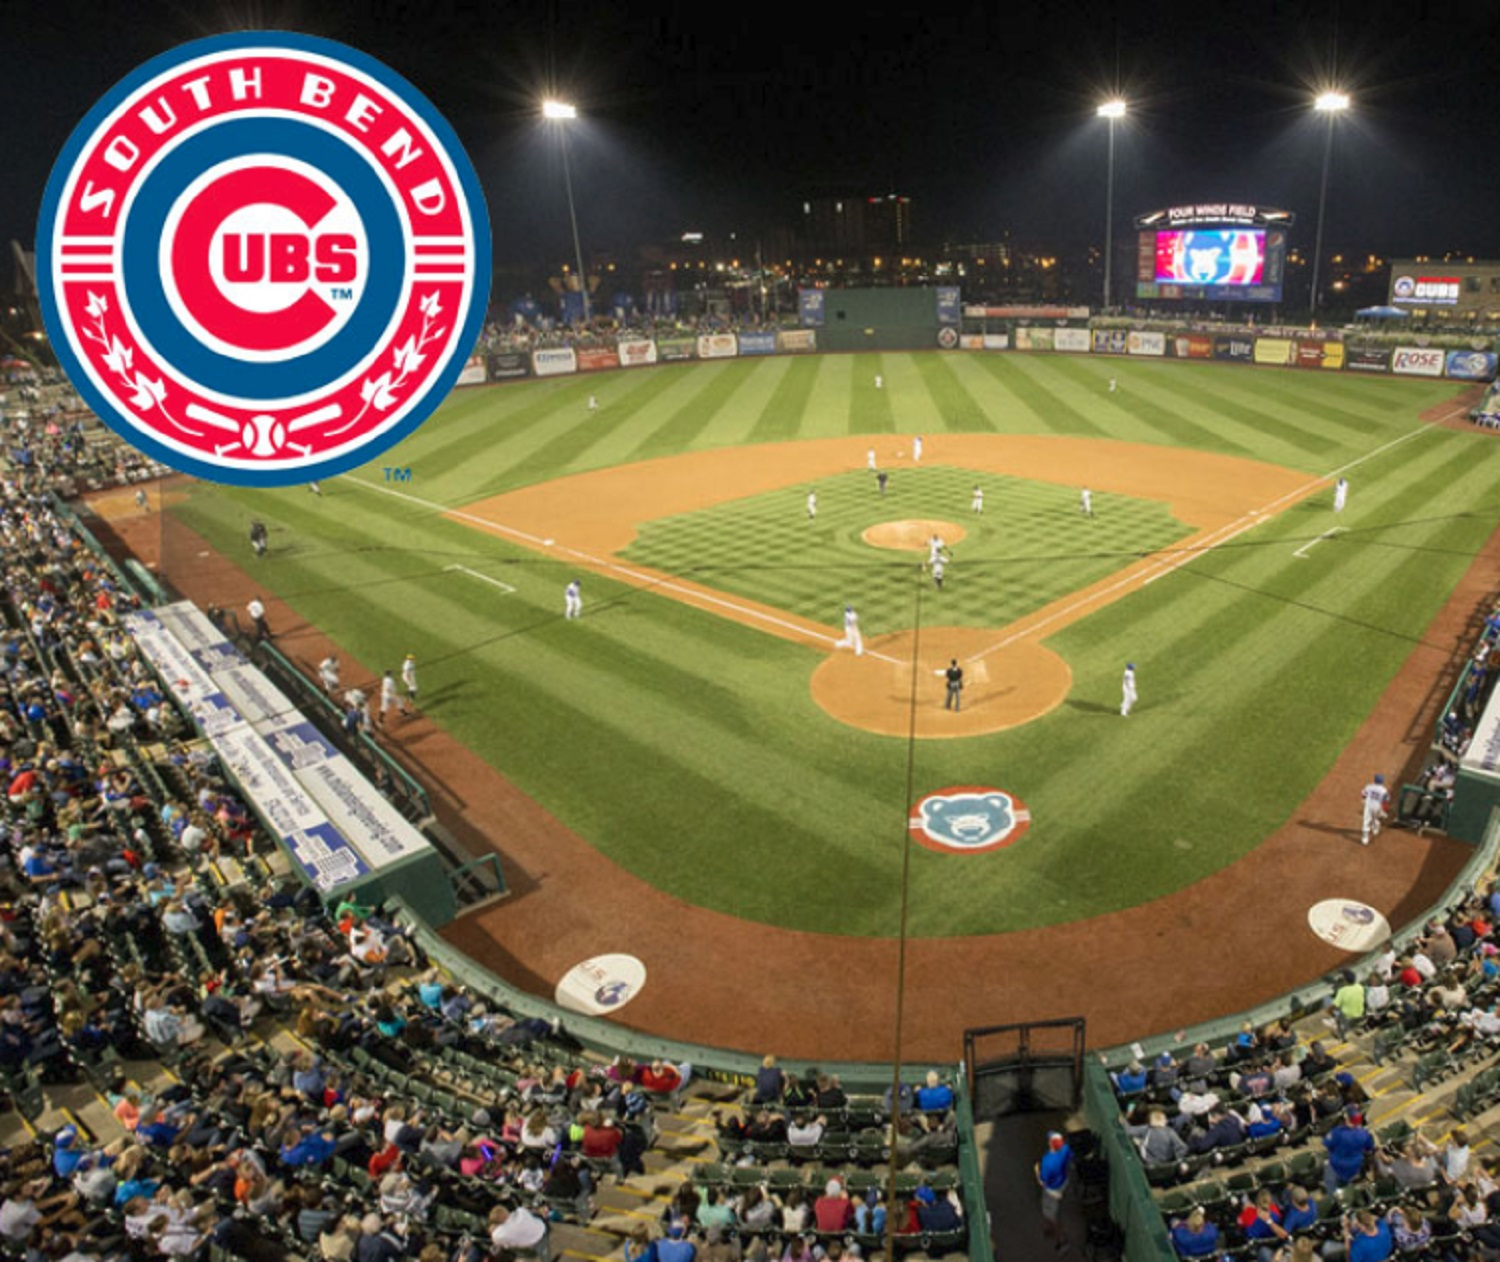 Chicago Cubs logo over field